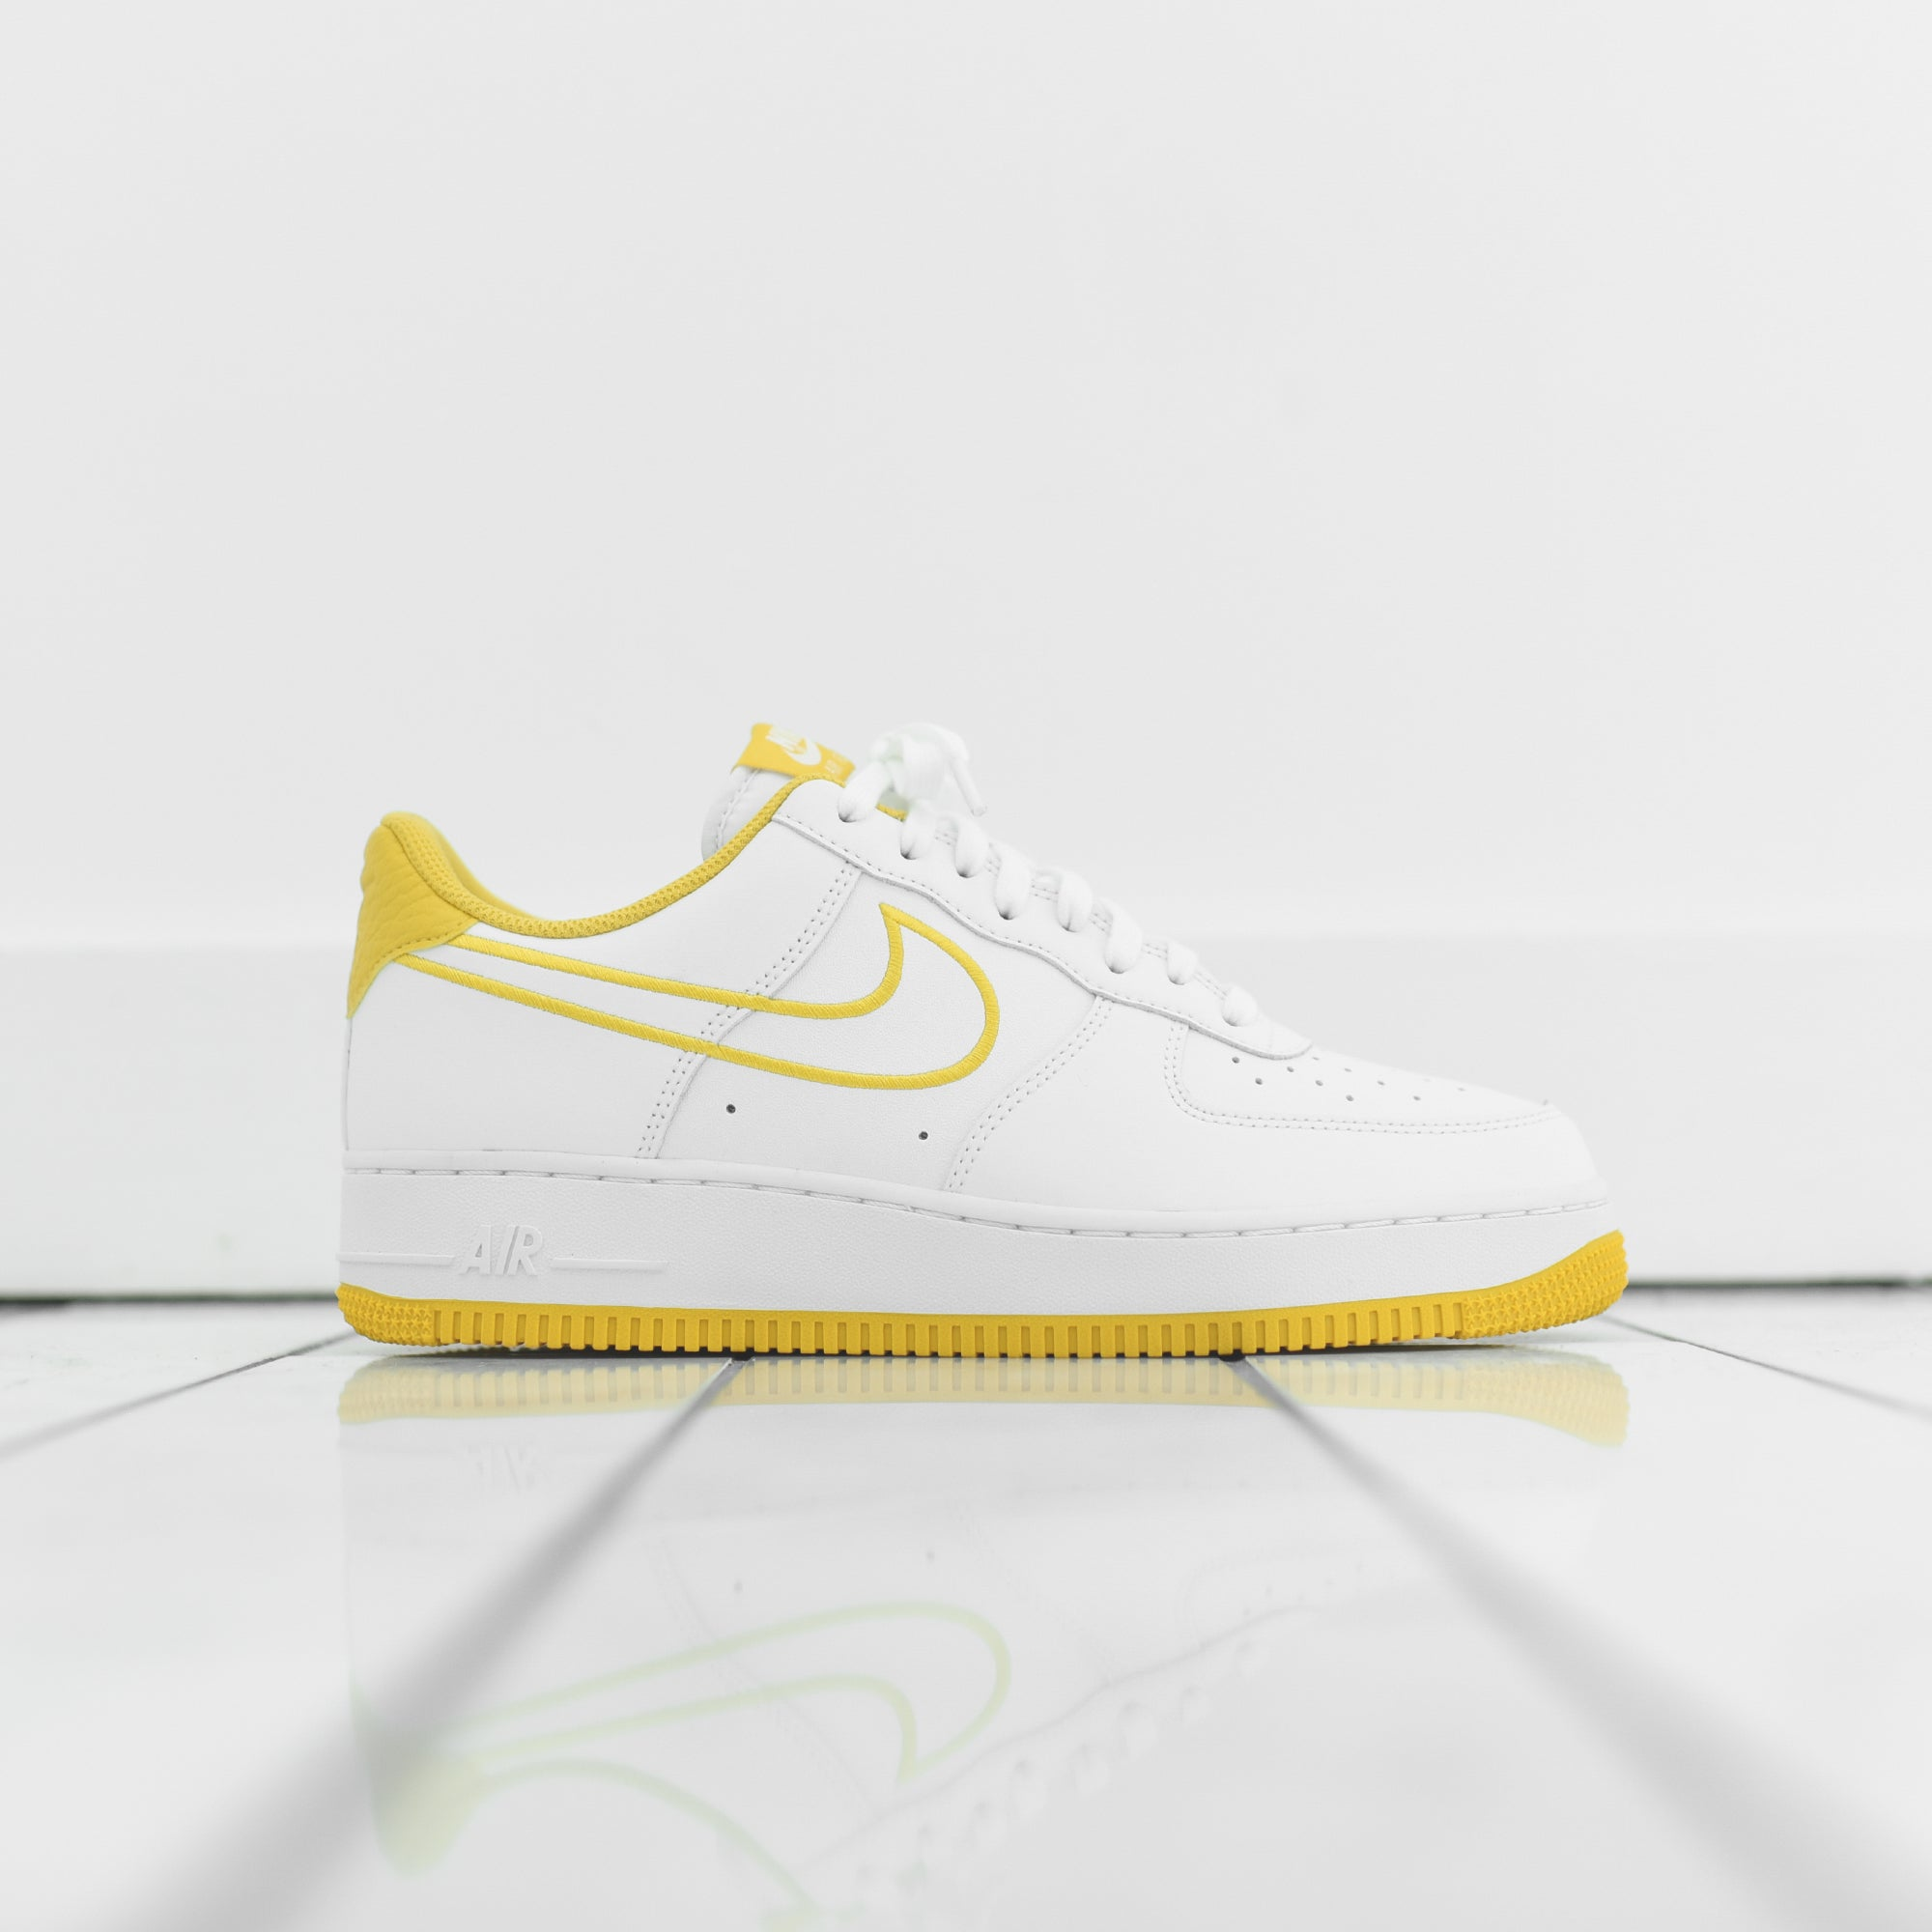 Yellow Journal Wholesale Bf435 925ef Nike Force 1 Air dxoeCBr